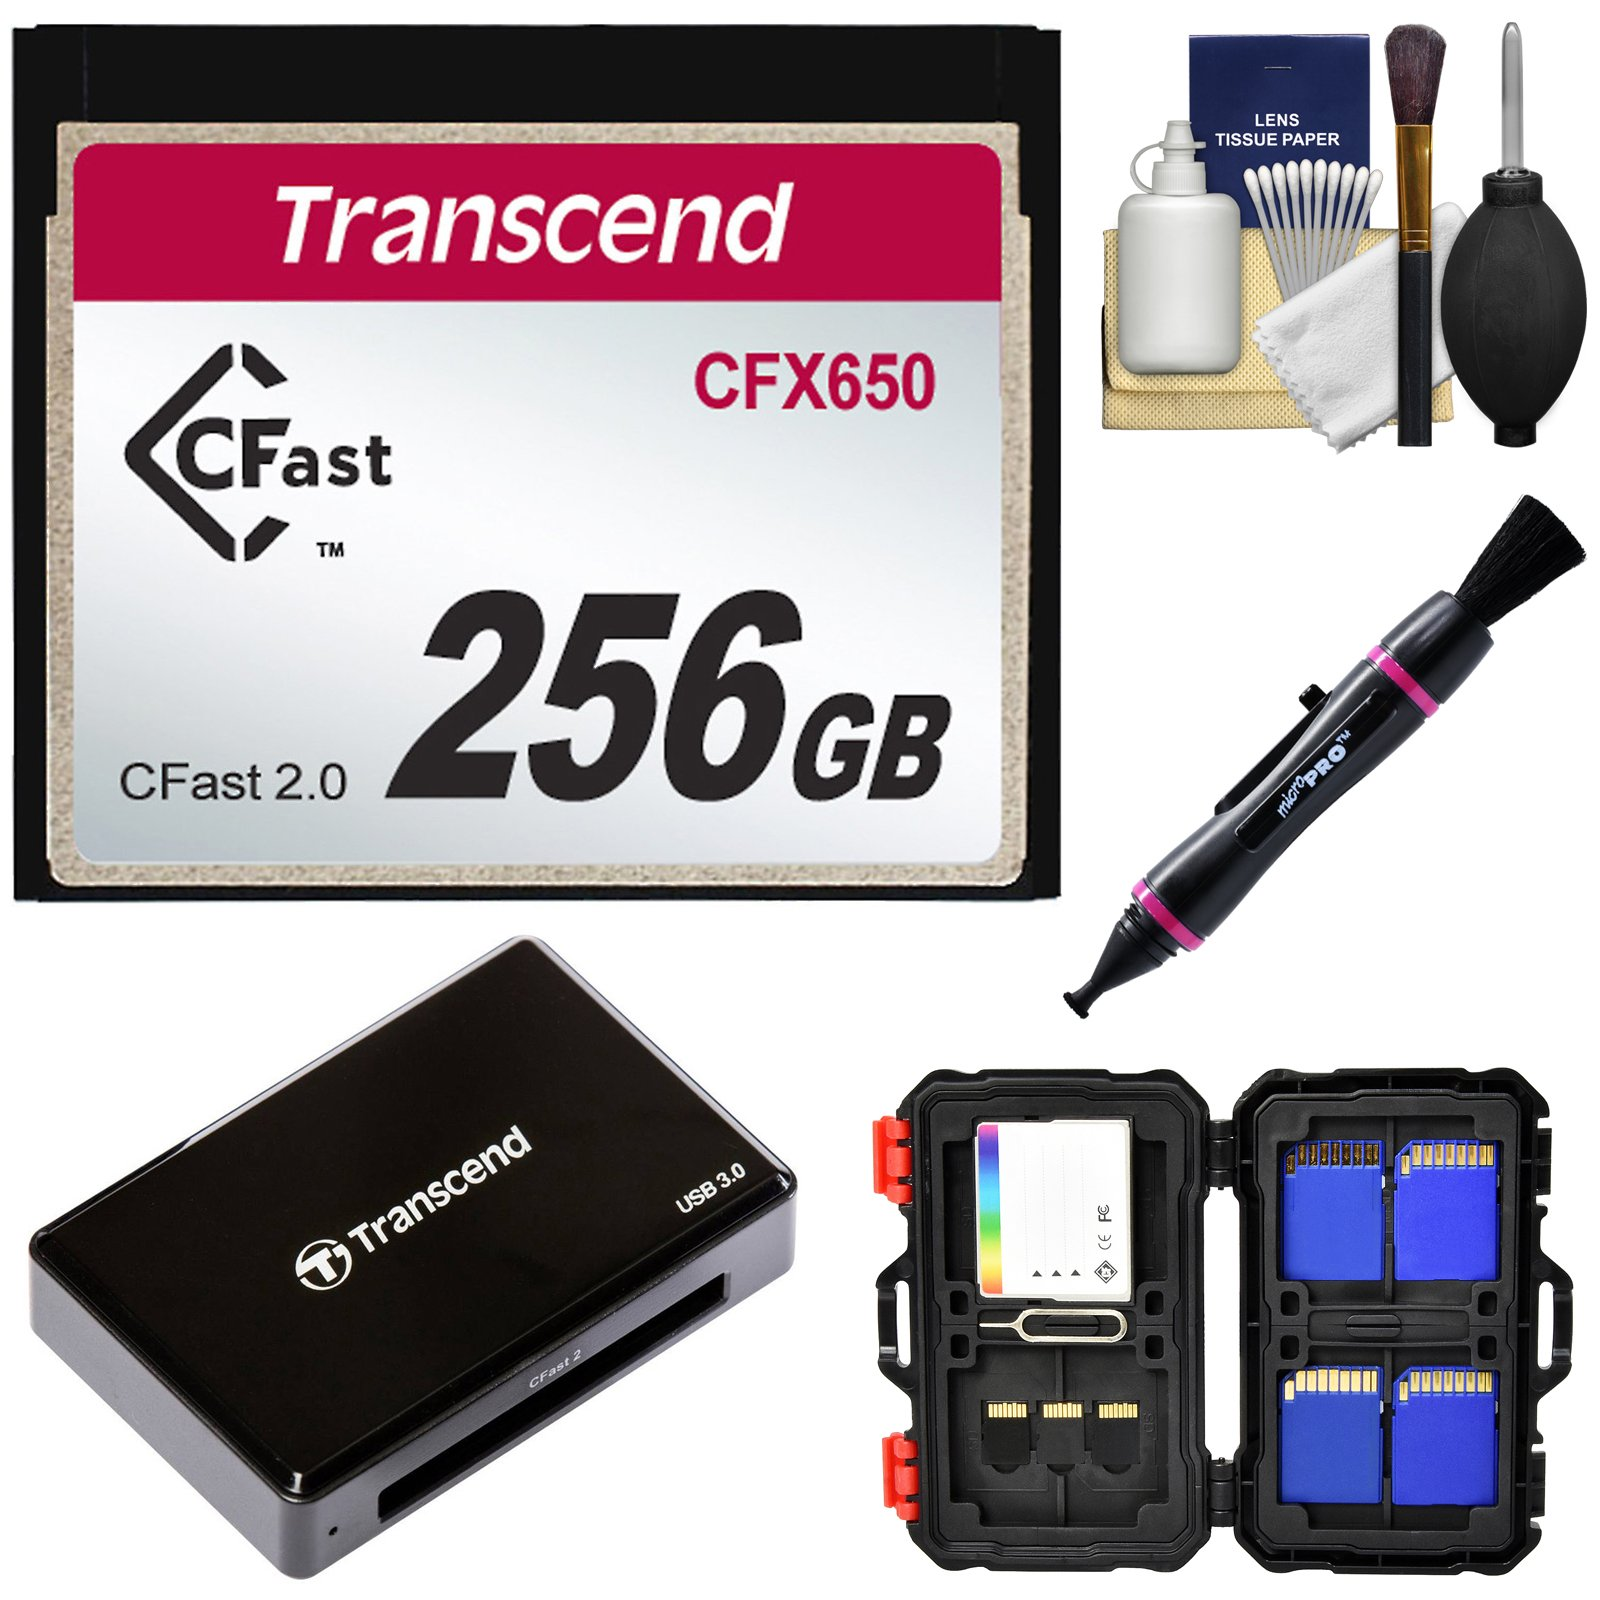 Transcend 256GB CFast 2.0 CFX650 Memory Card with Card Reader + Memory Card Case + Kit